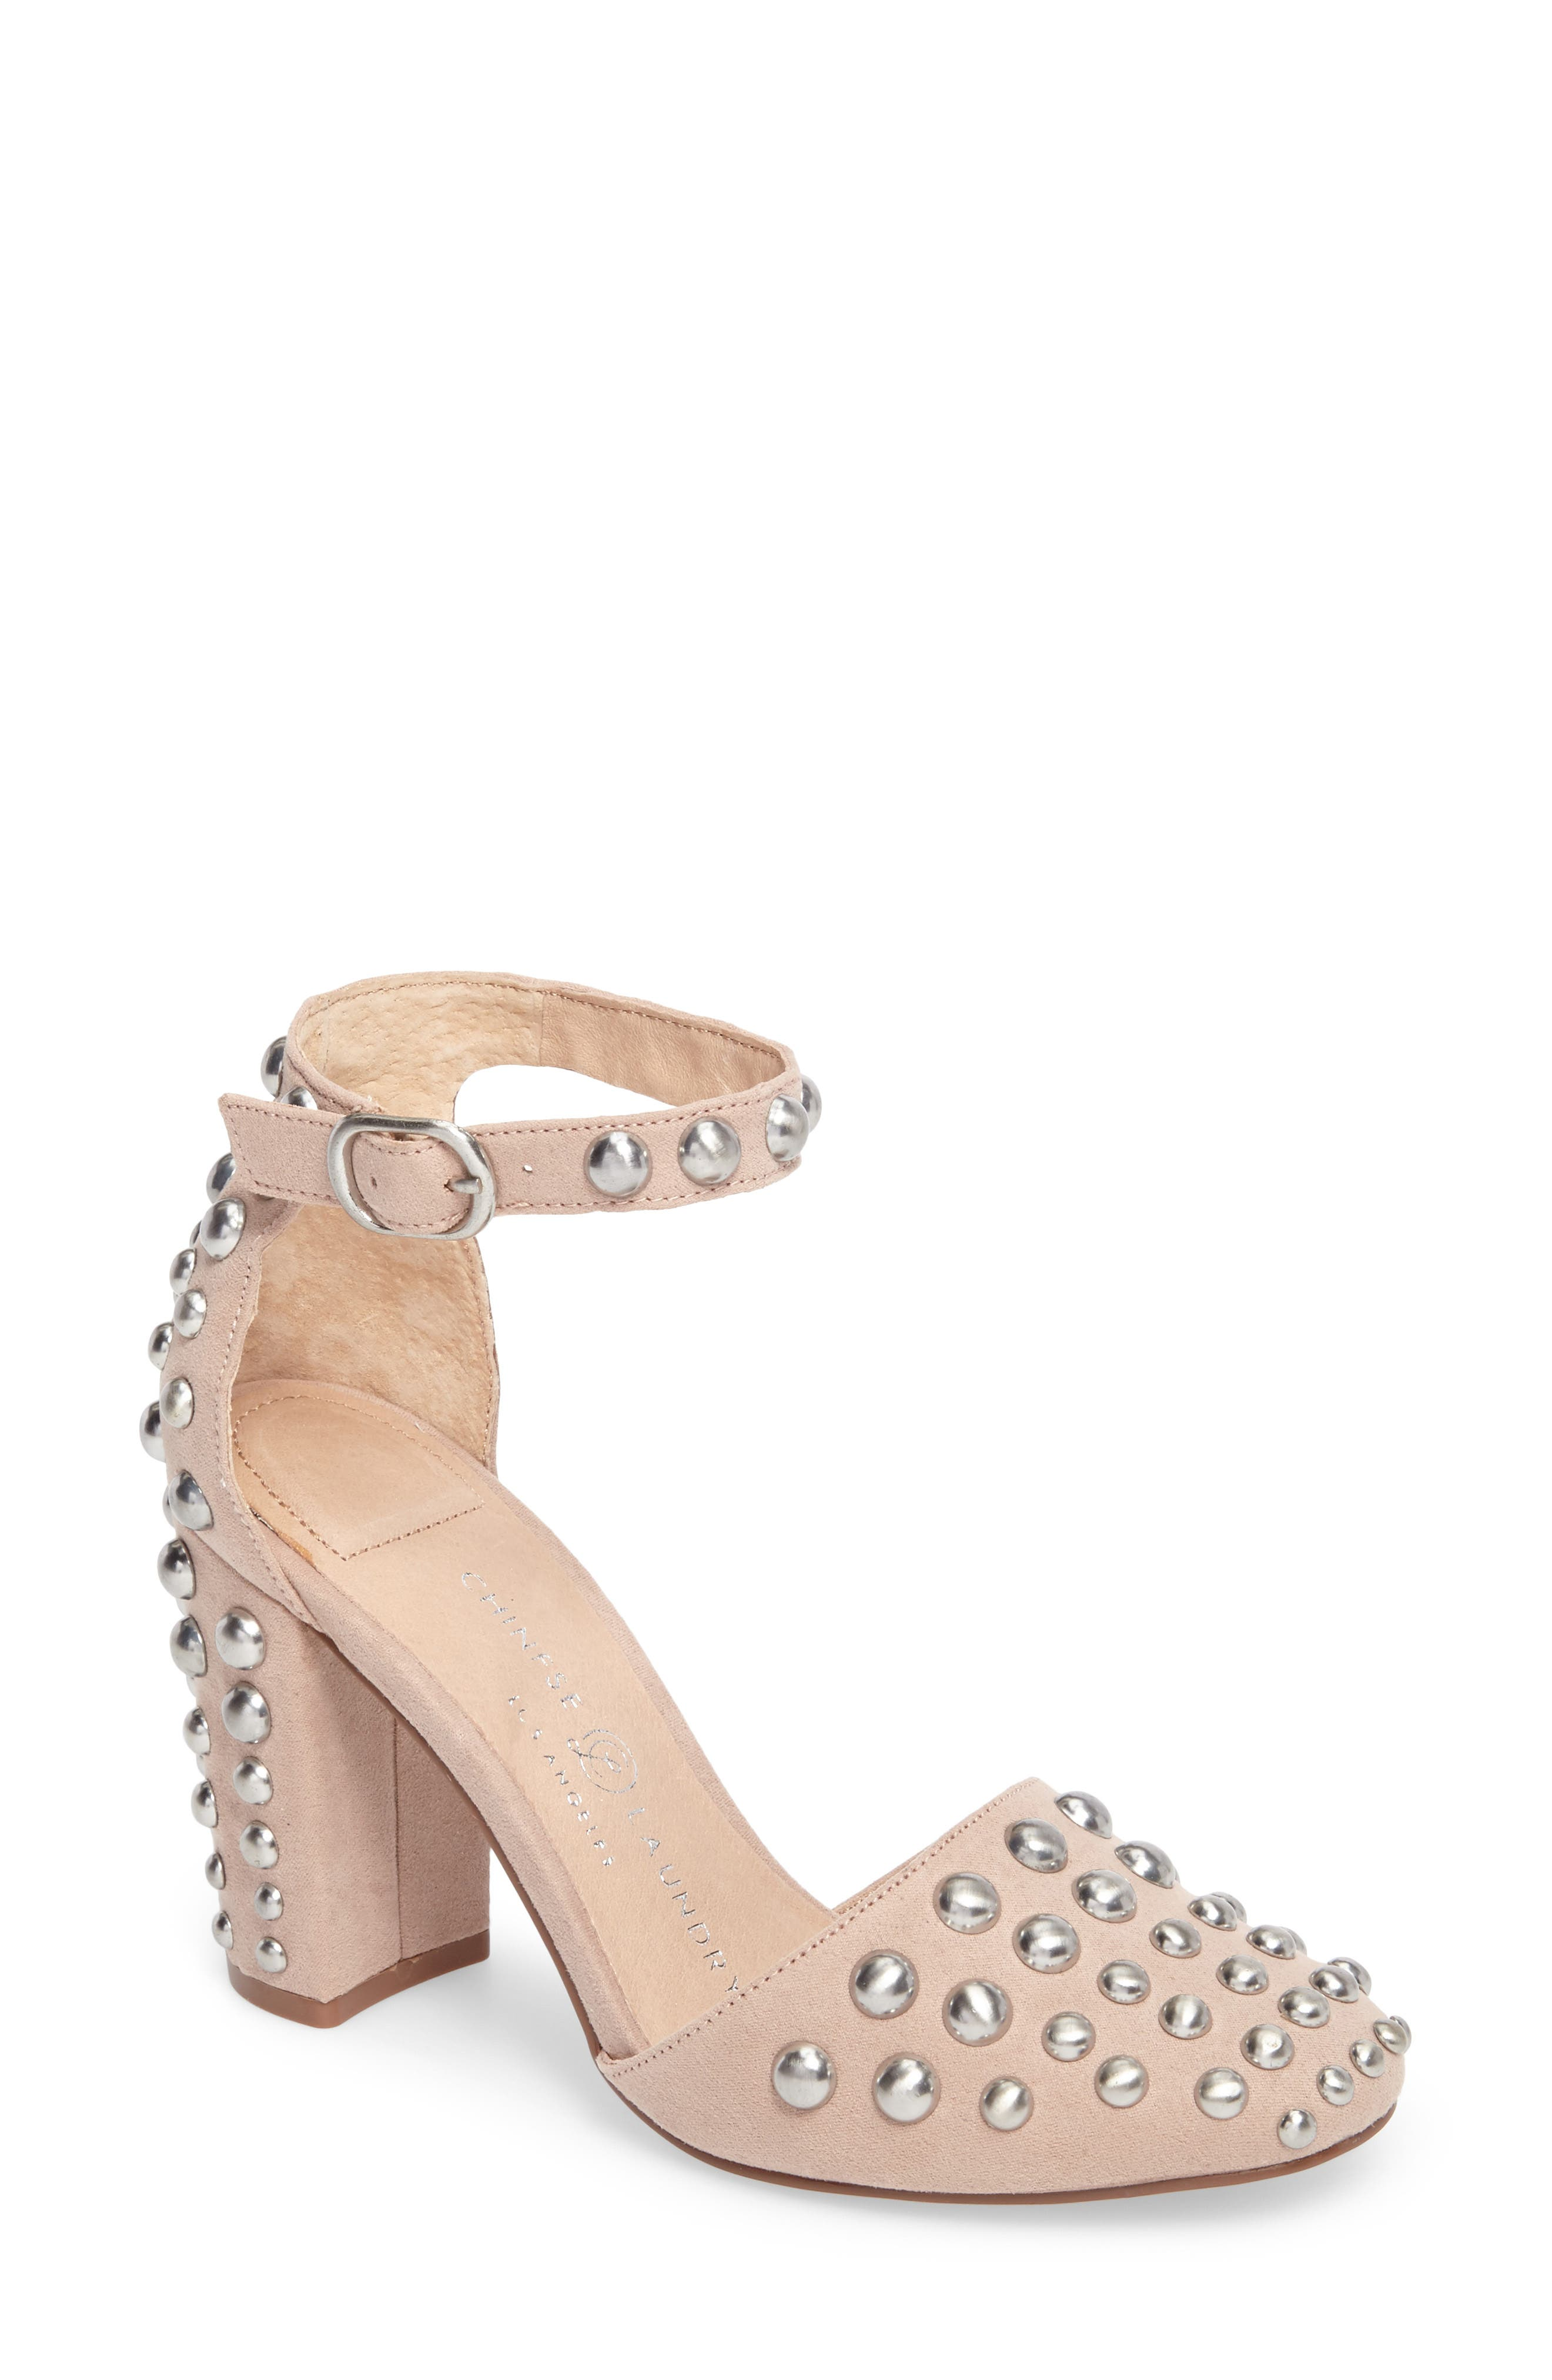 Alternate Image 1 Selected - Chinese Laundry Vegas Studded Pump (Women)